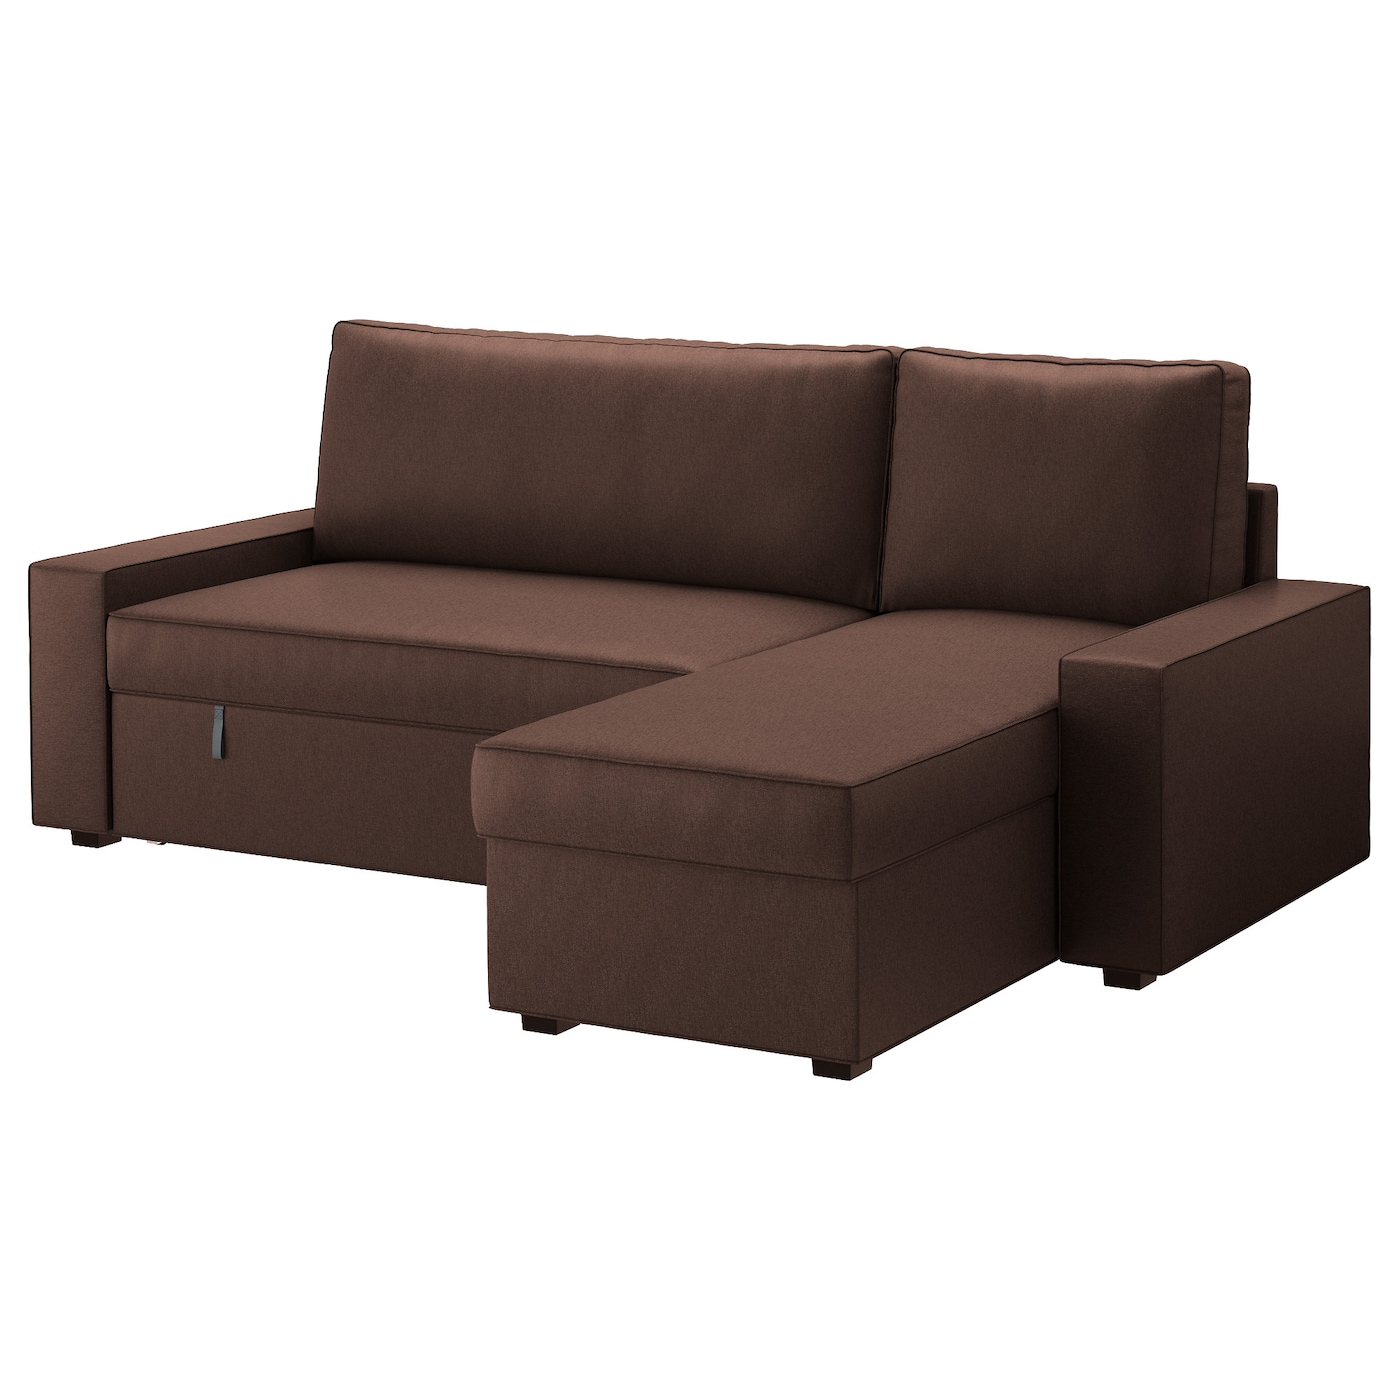 Vilasund sofa bed with chaise longue borred dark brown ikea for Chaise longue sofabed